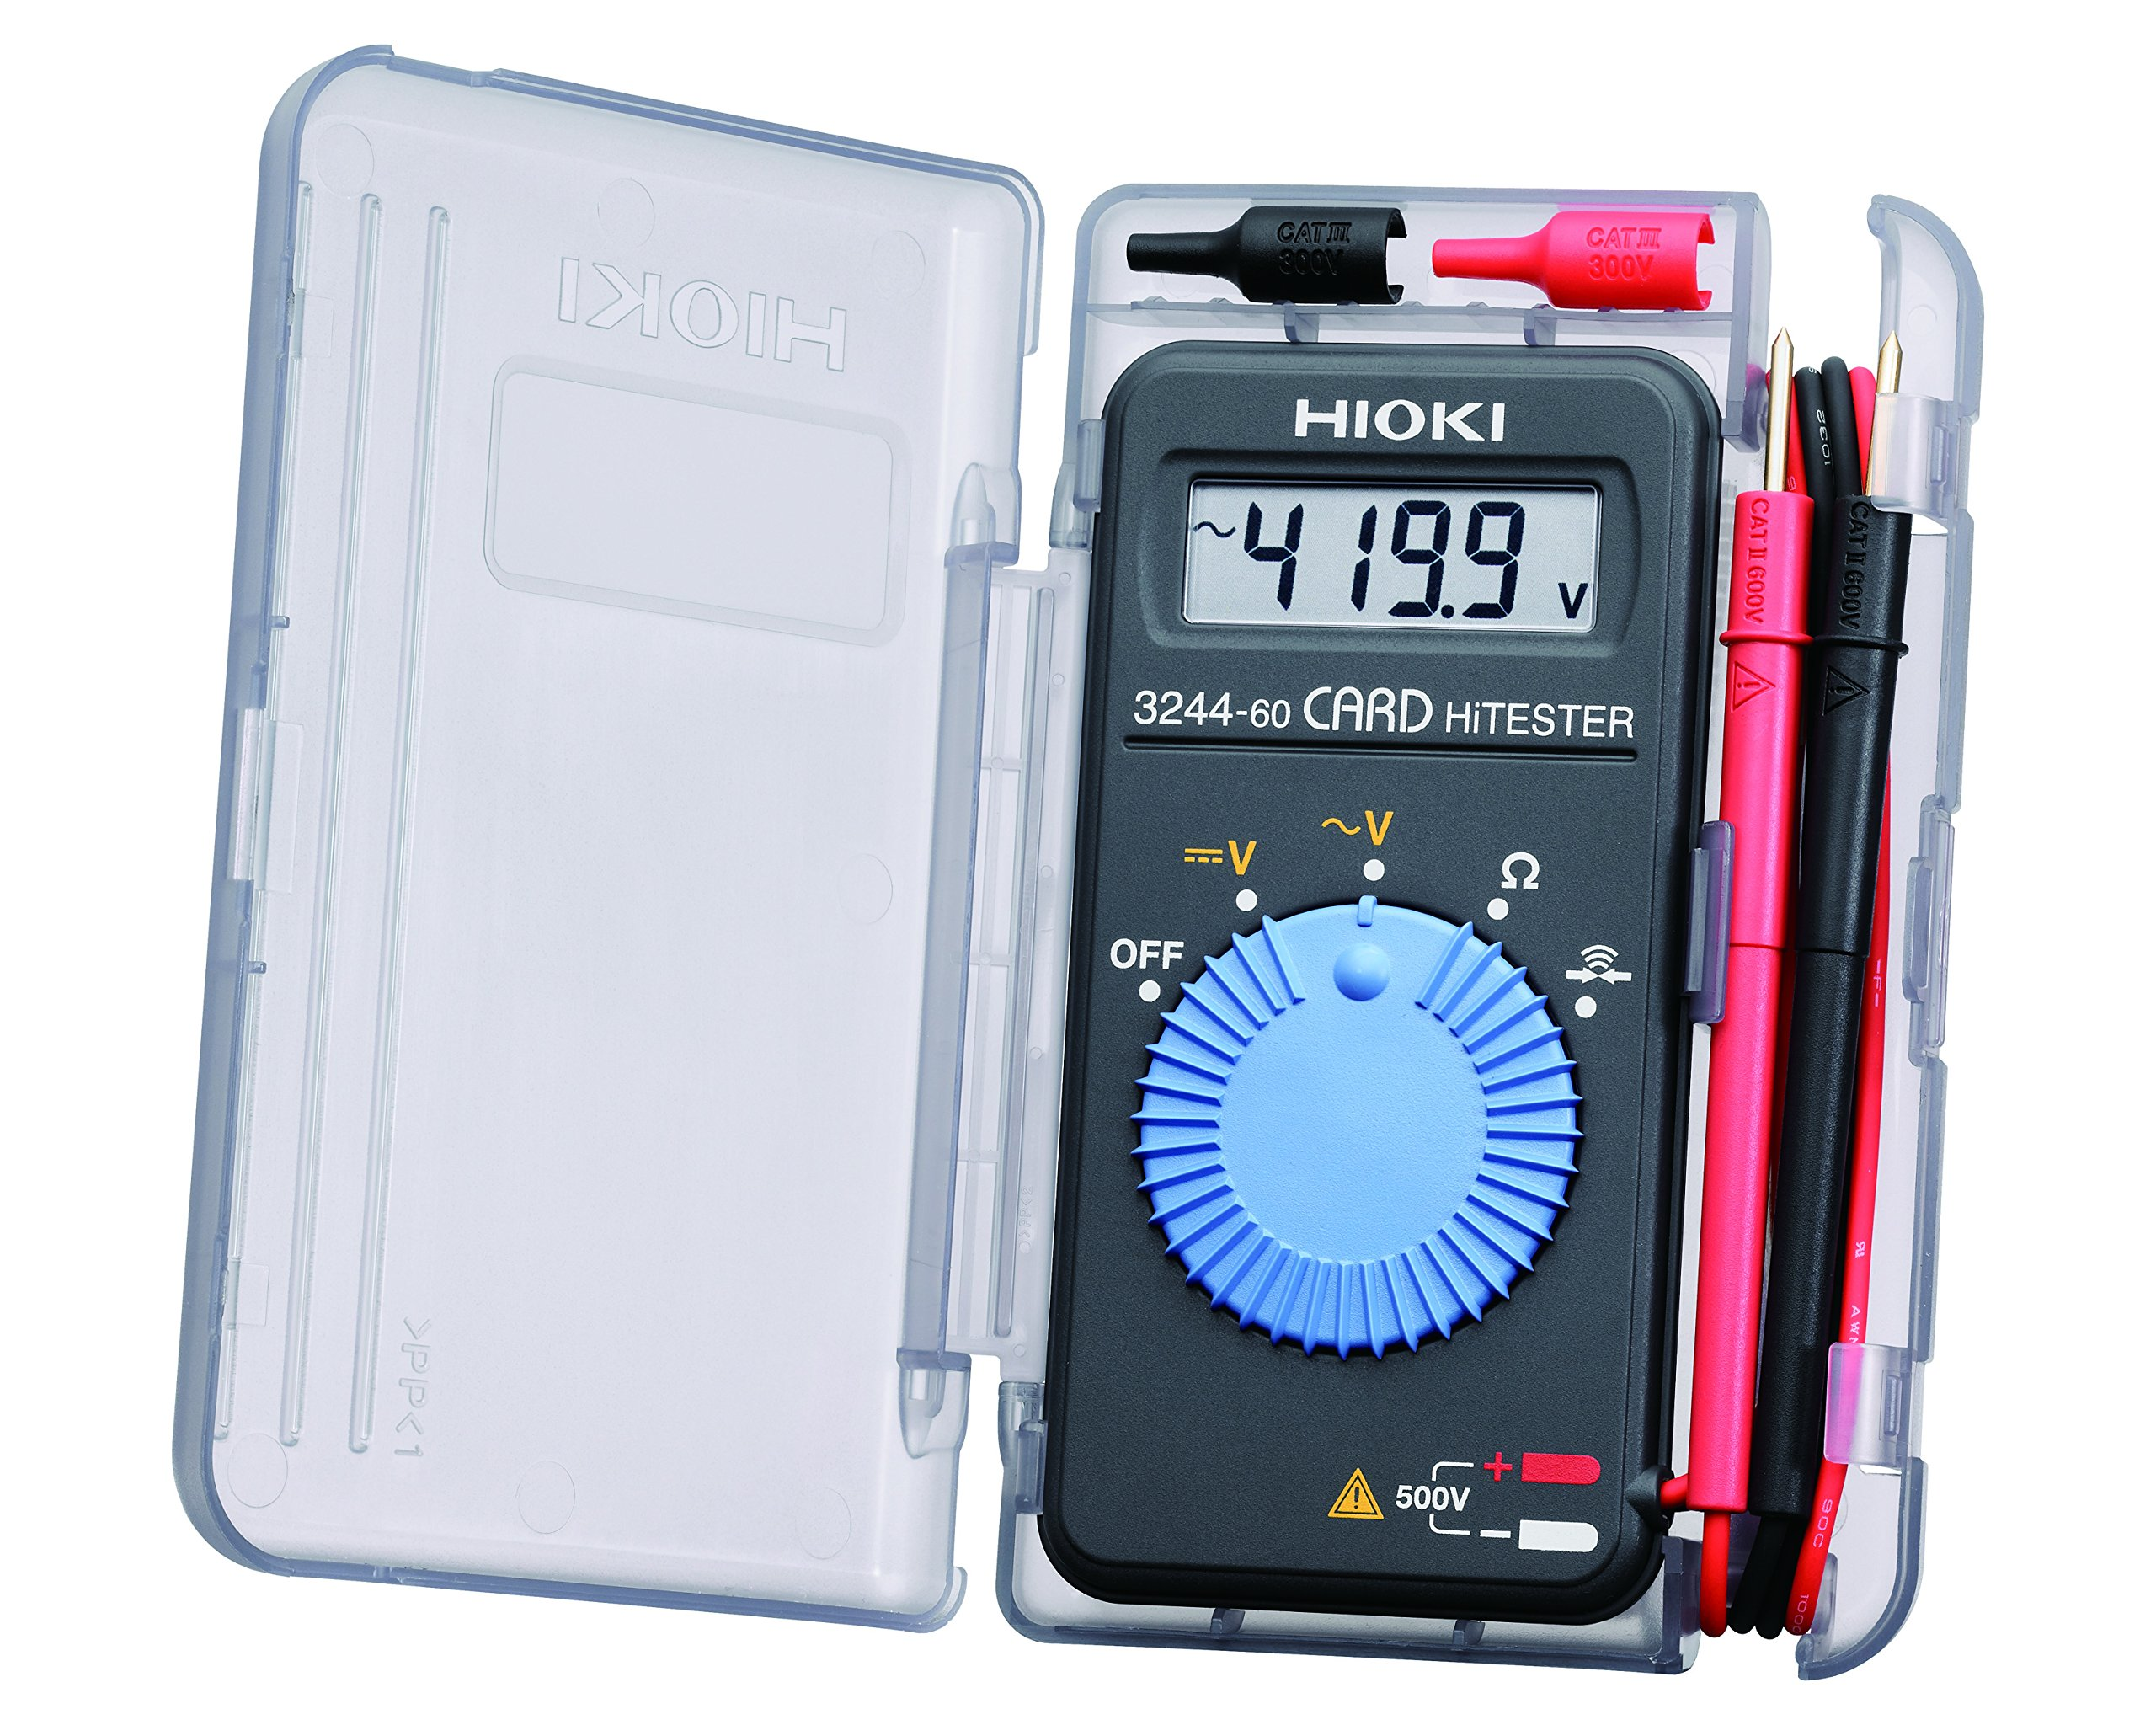 Hioki 3244-60 Card HiTester and Digital Multimeter, 41.99 Megaohms Resistance, 500V AC/DC Voltage